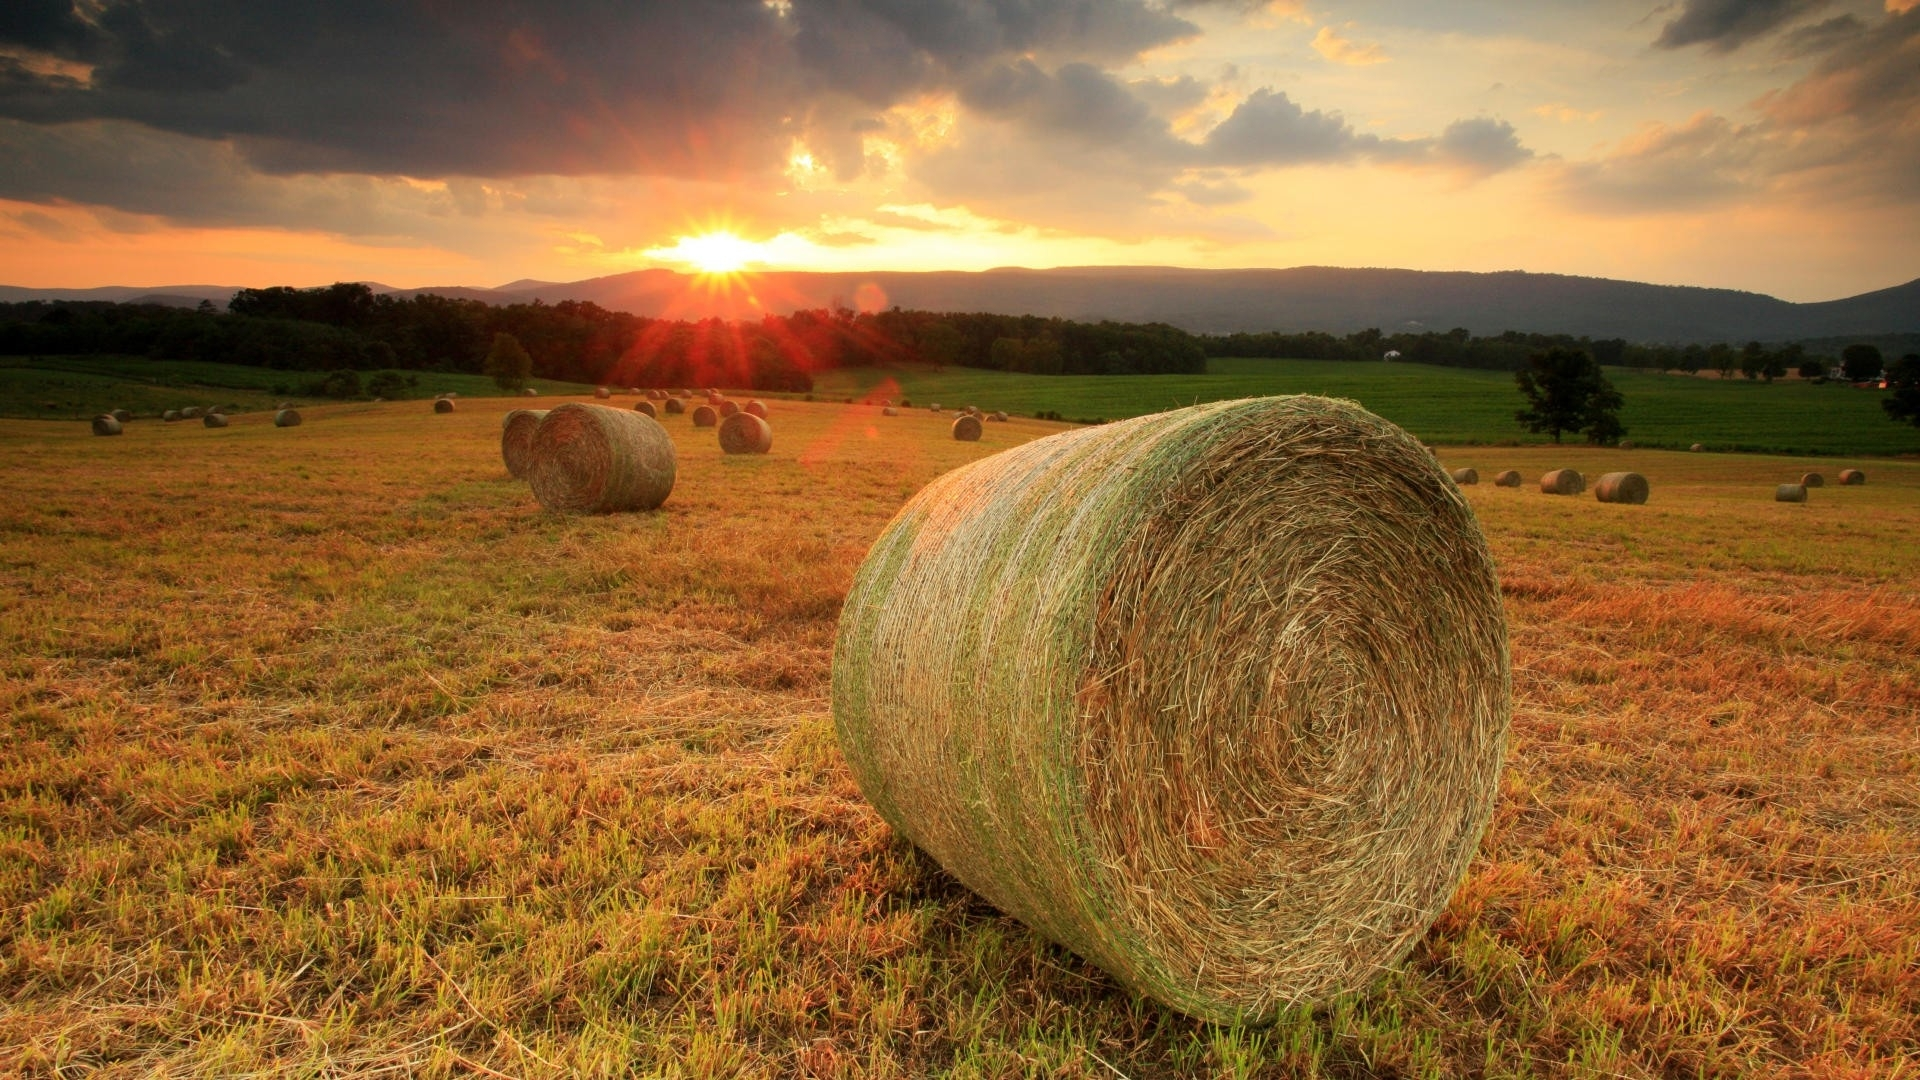 Fall Landscape Wallpapers Free Hay Bales Hd 32988 1920x1080 Px Hdwallsource Com